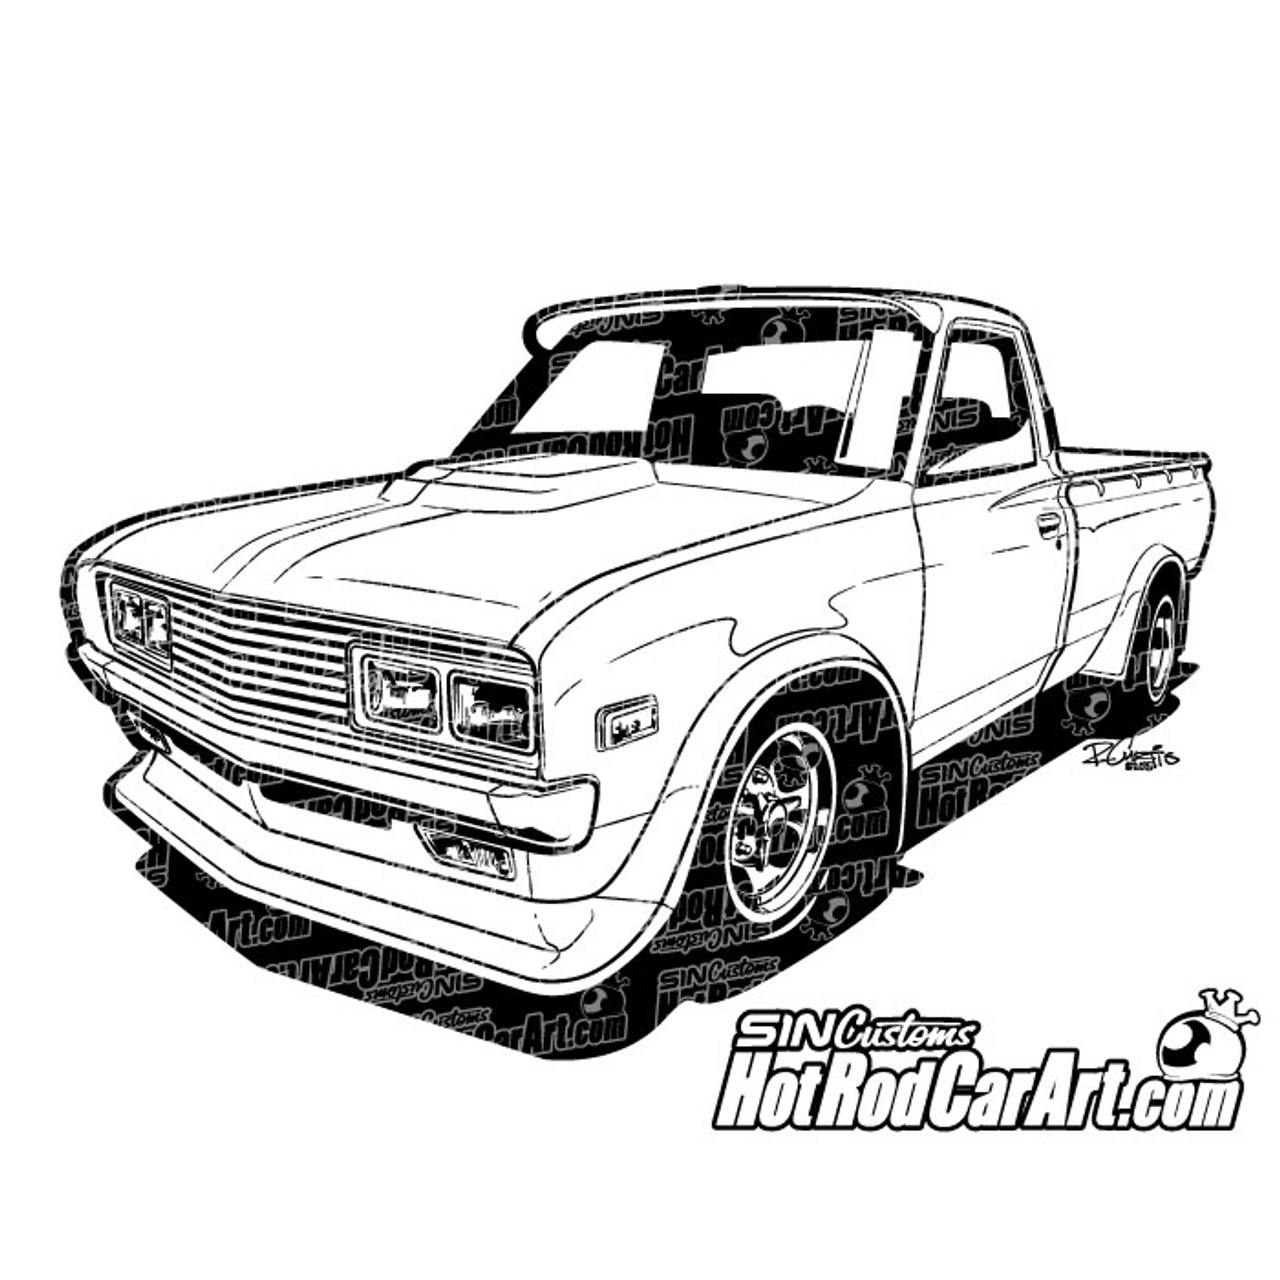 small resolution of 1978 datsun pickup 2015 ryan curtis hotrodcarart com